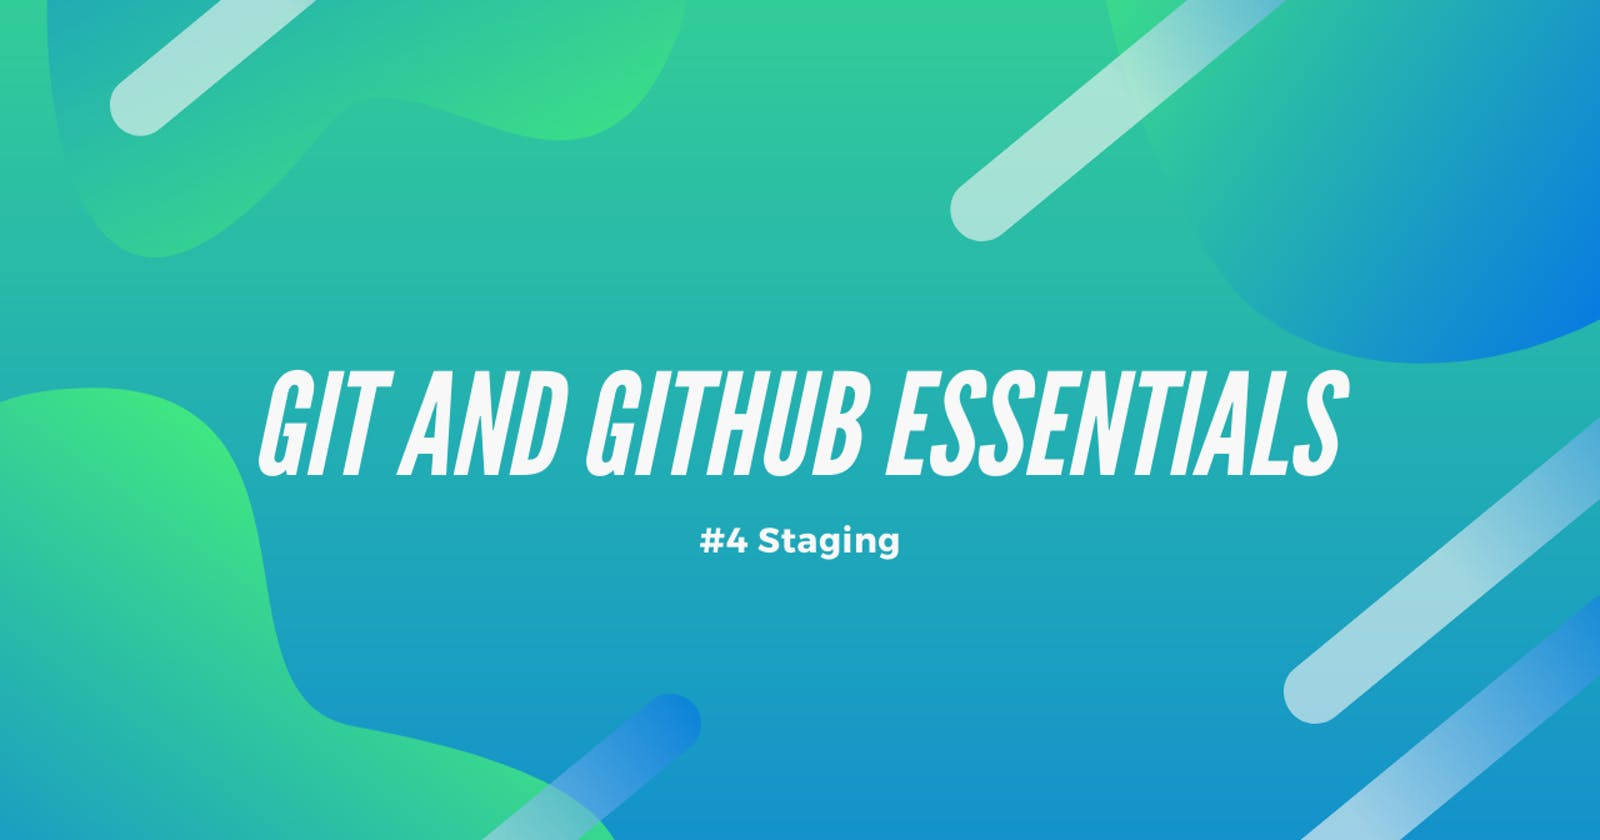 Git and GitHub Essentials - #4 Staging